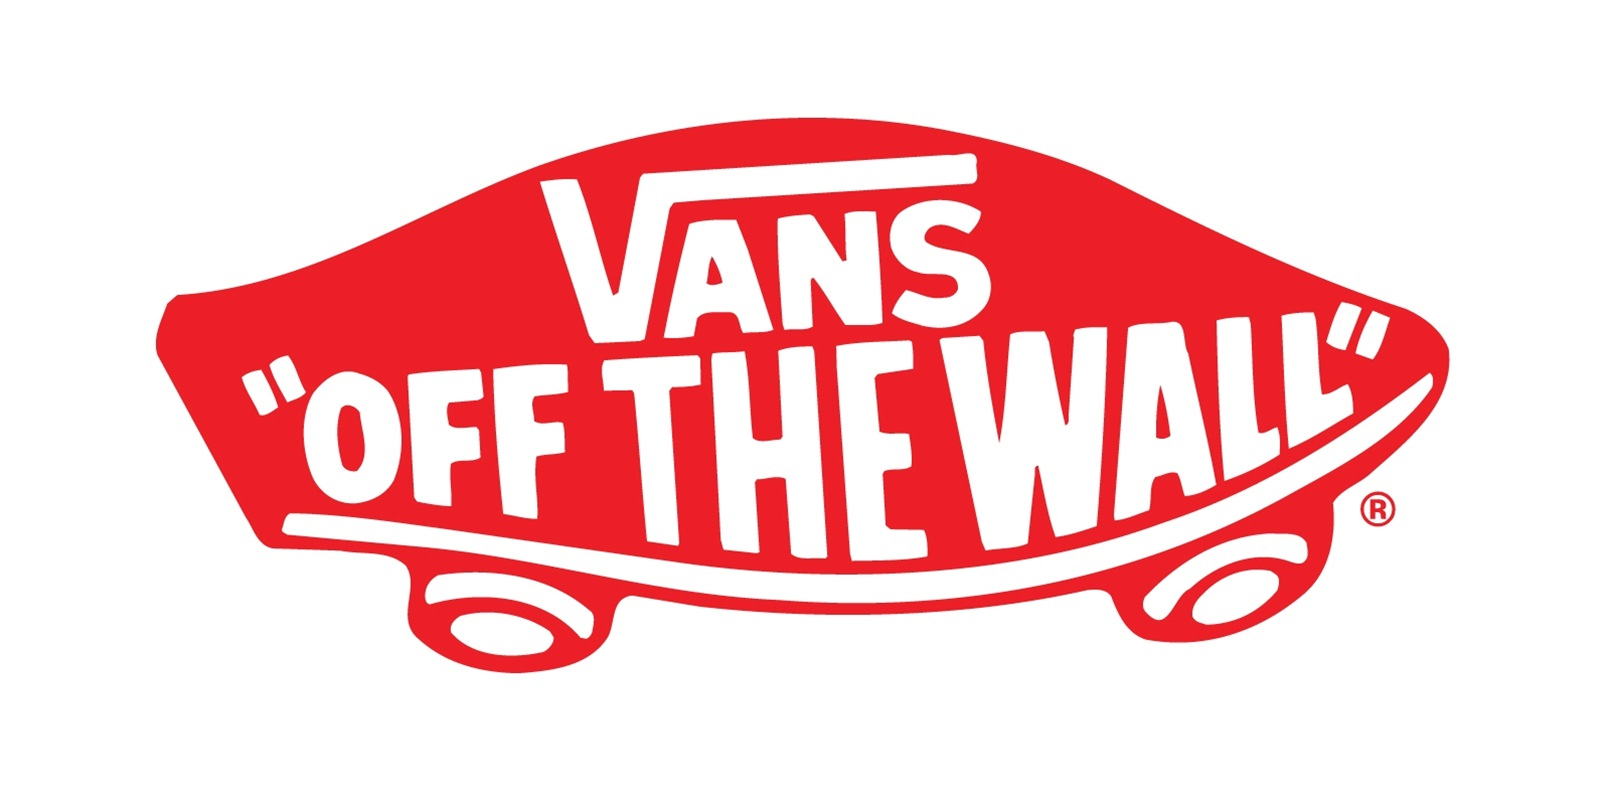 Free Vans Shoes Cliparts, Download Free Clip Art, Free Clip.